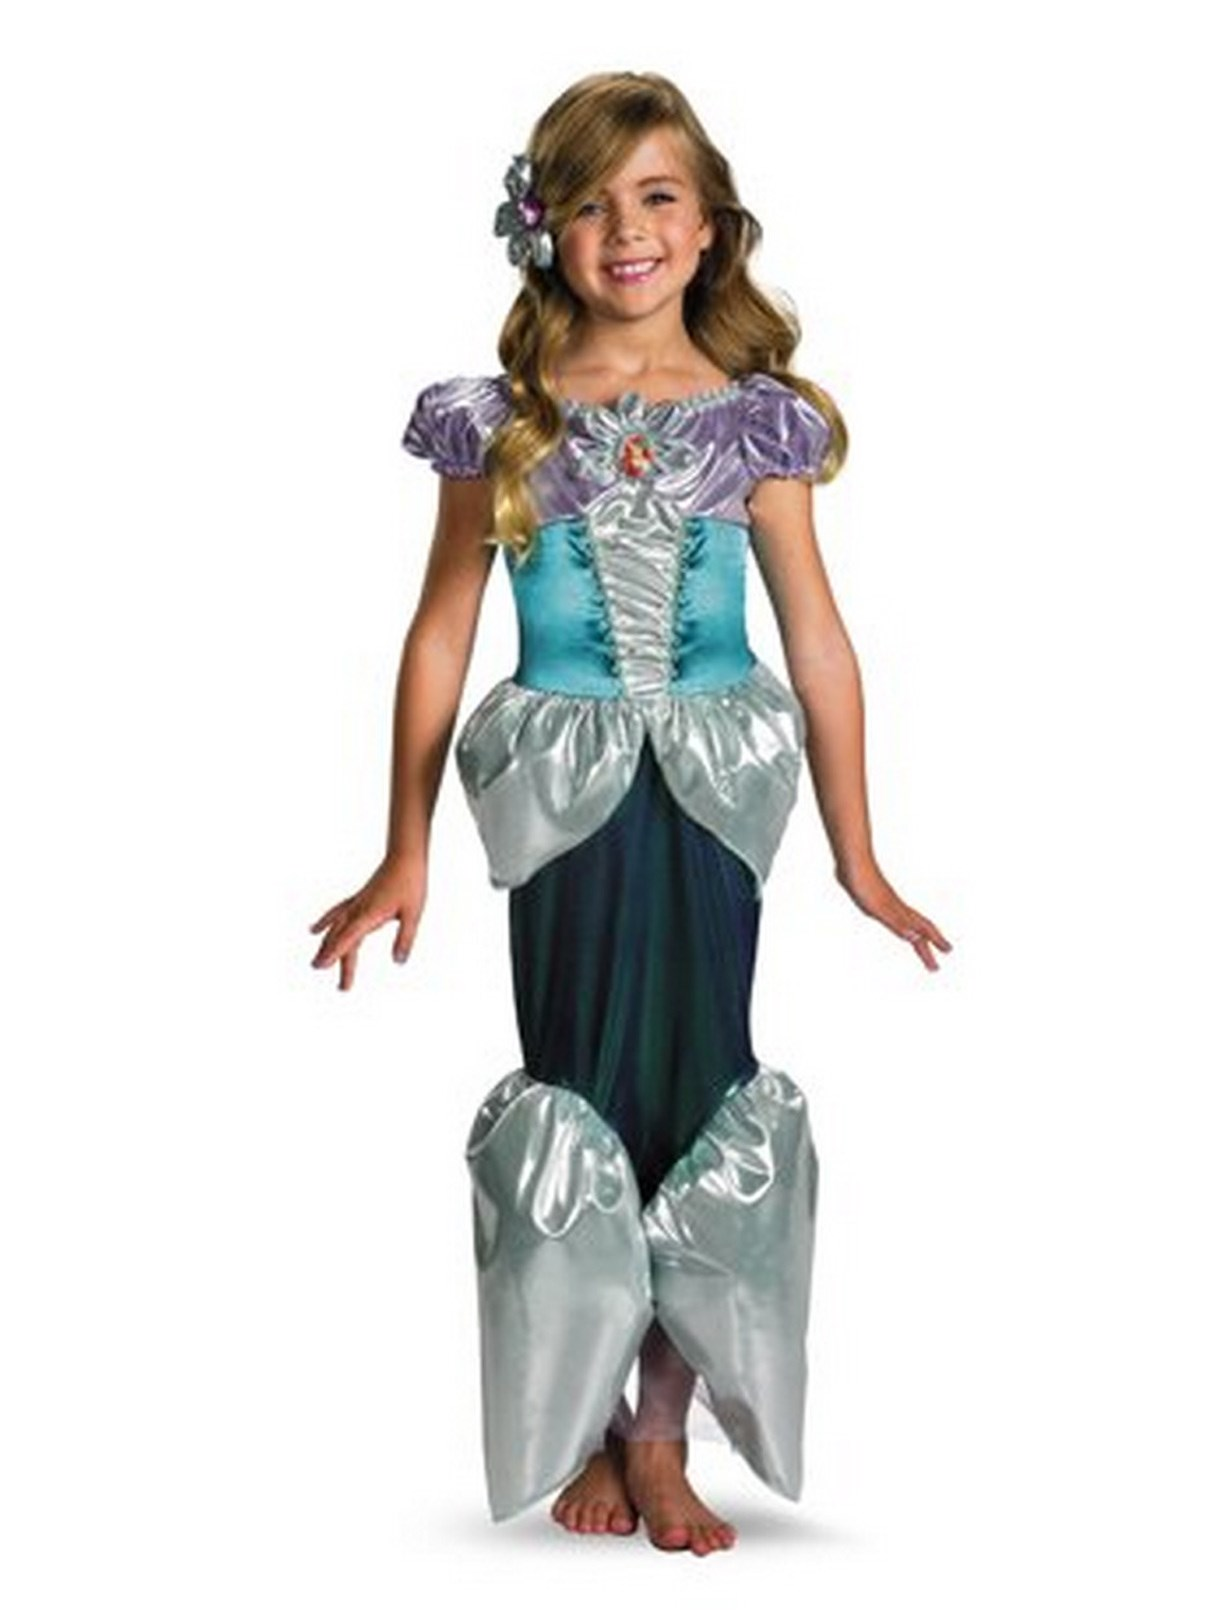 Disney Princess - Ariel Lame Deluxe Toddler / Child Costume Small (4/6x)